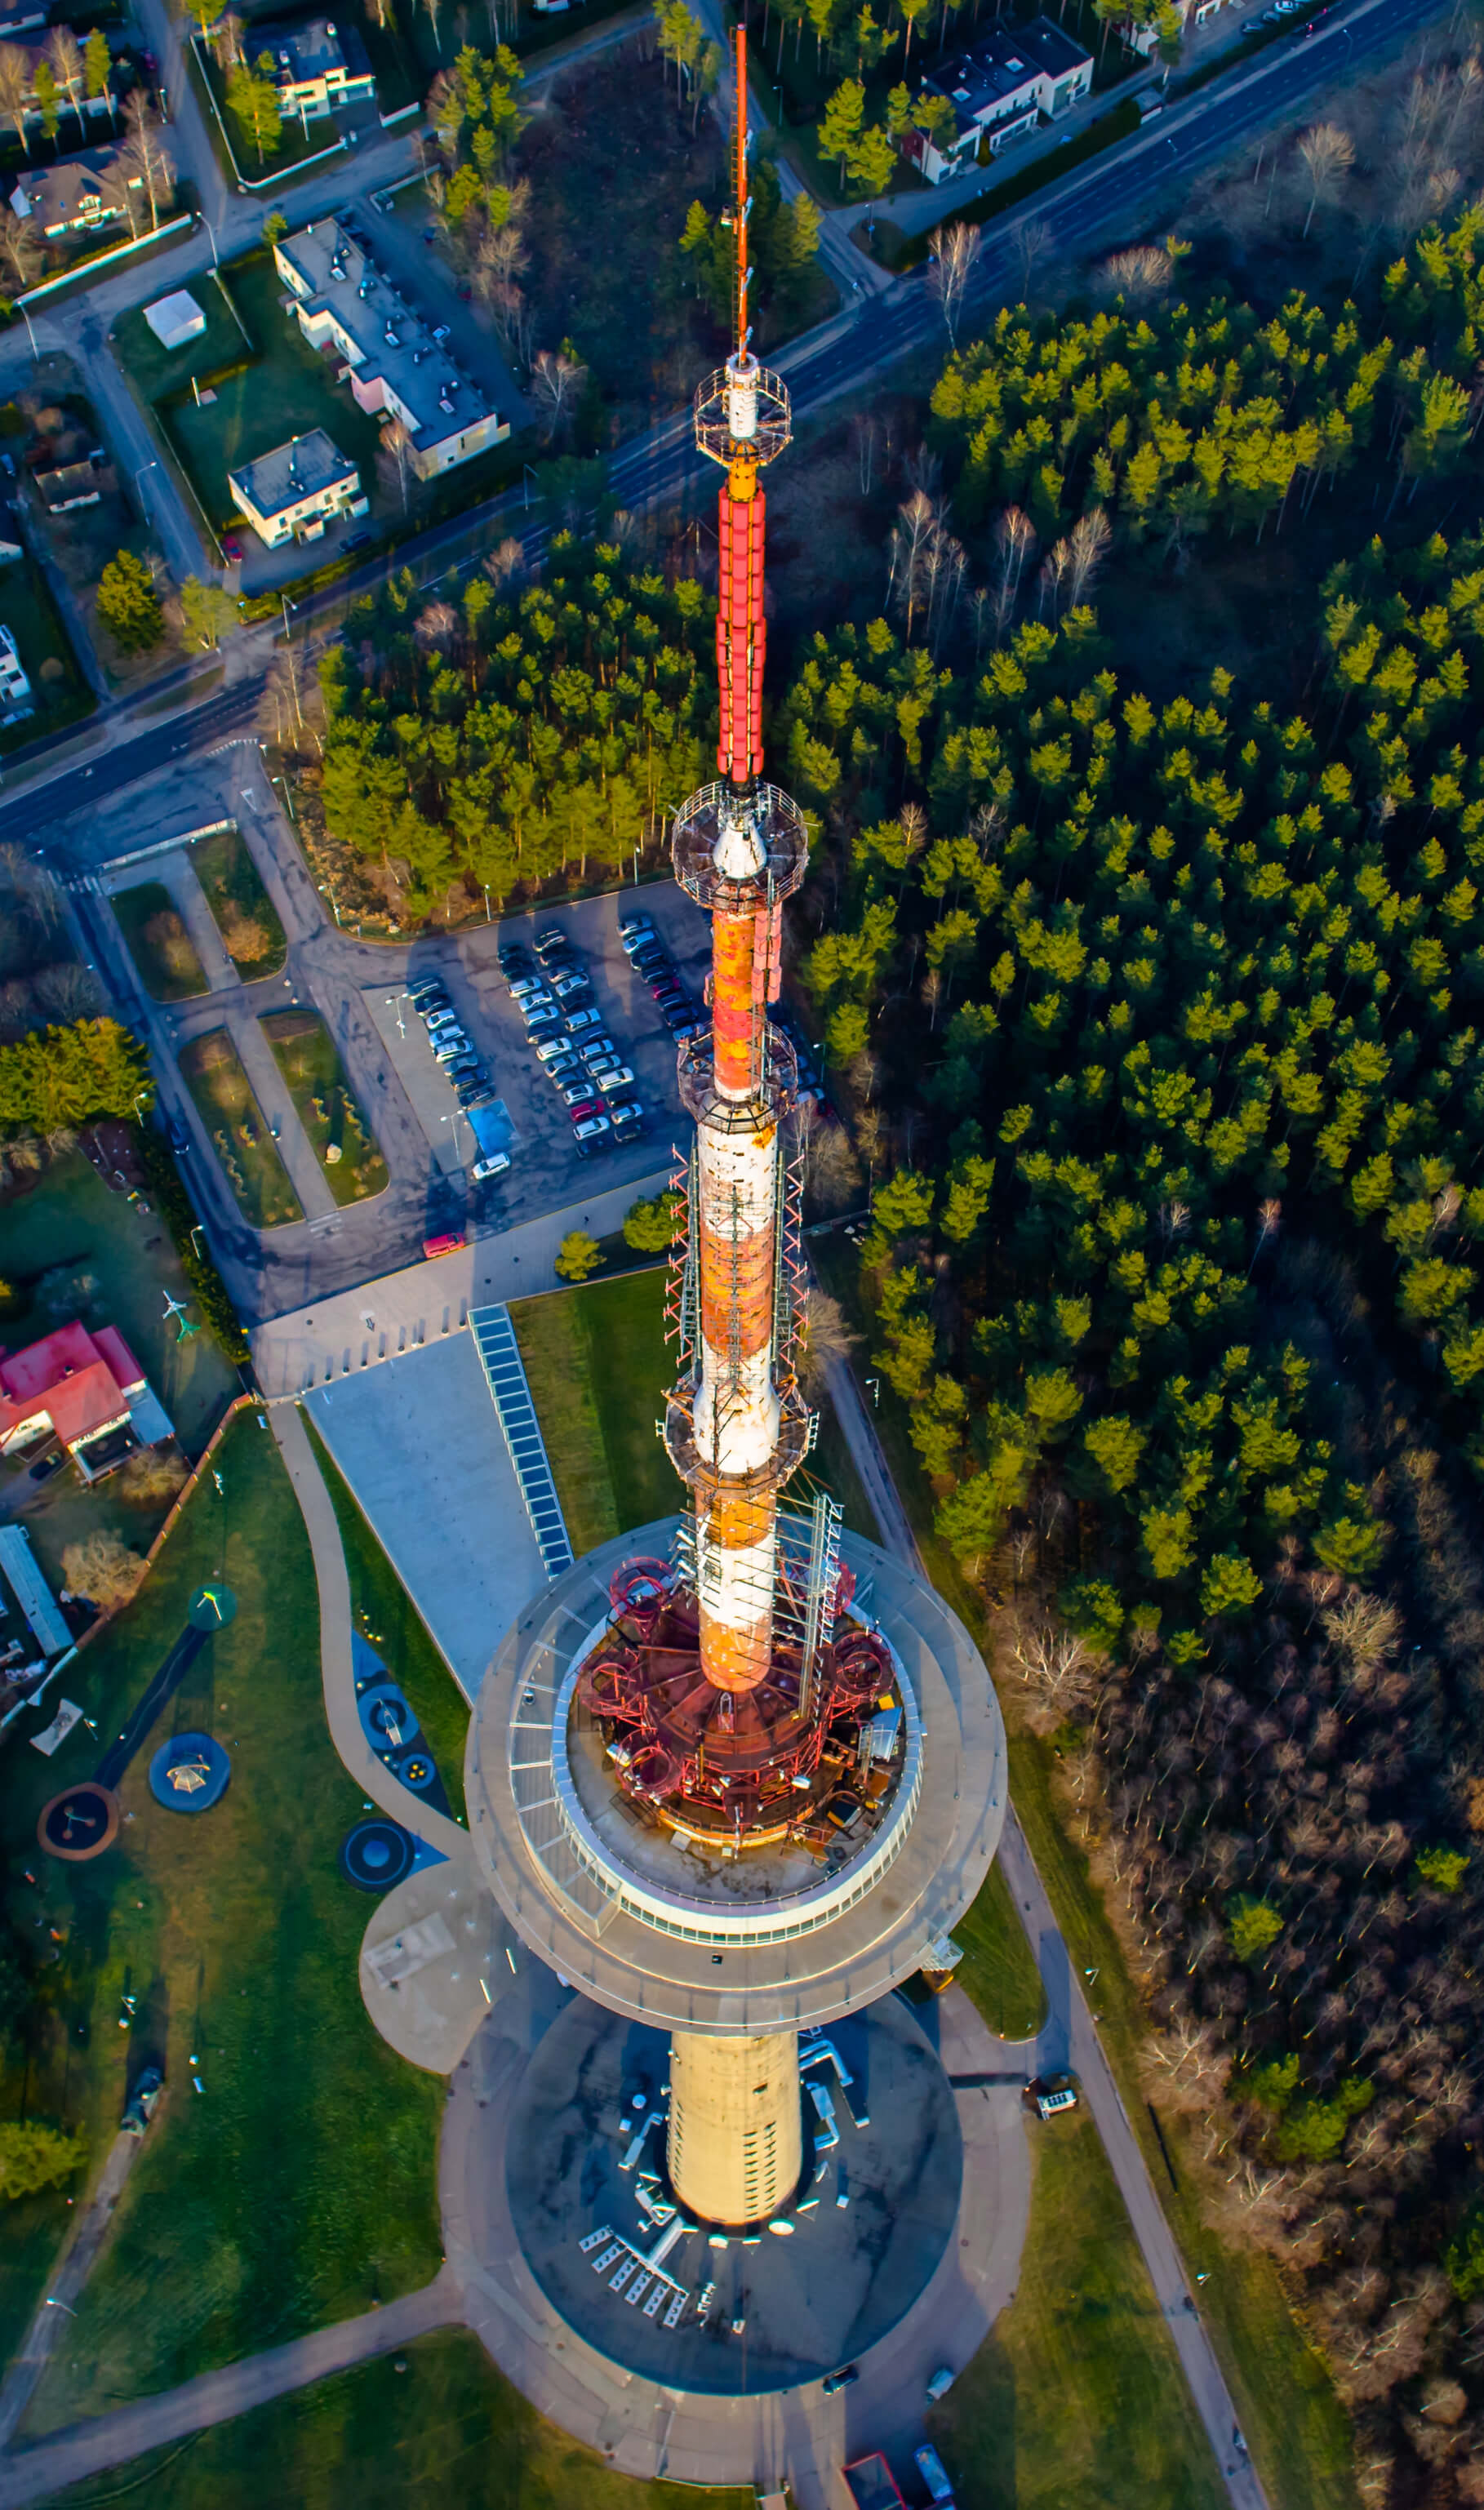 TALLINN TV-TOWER